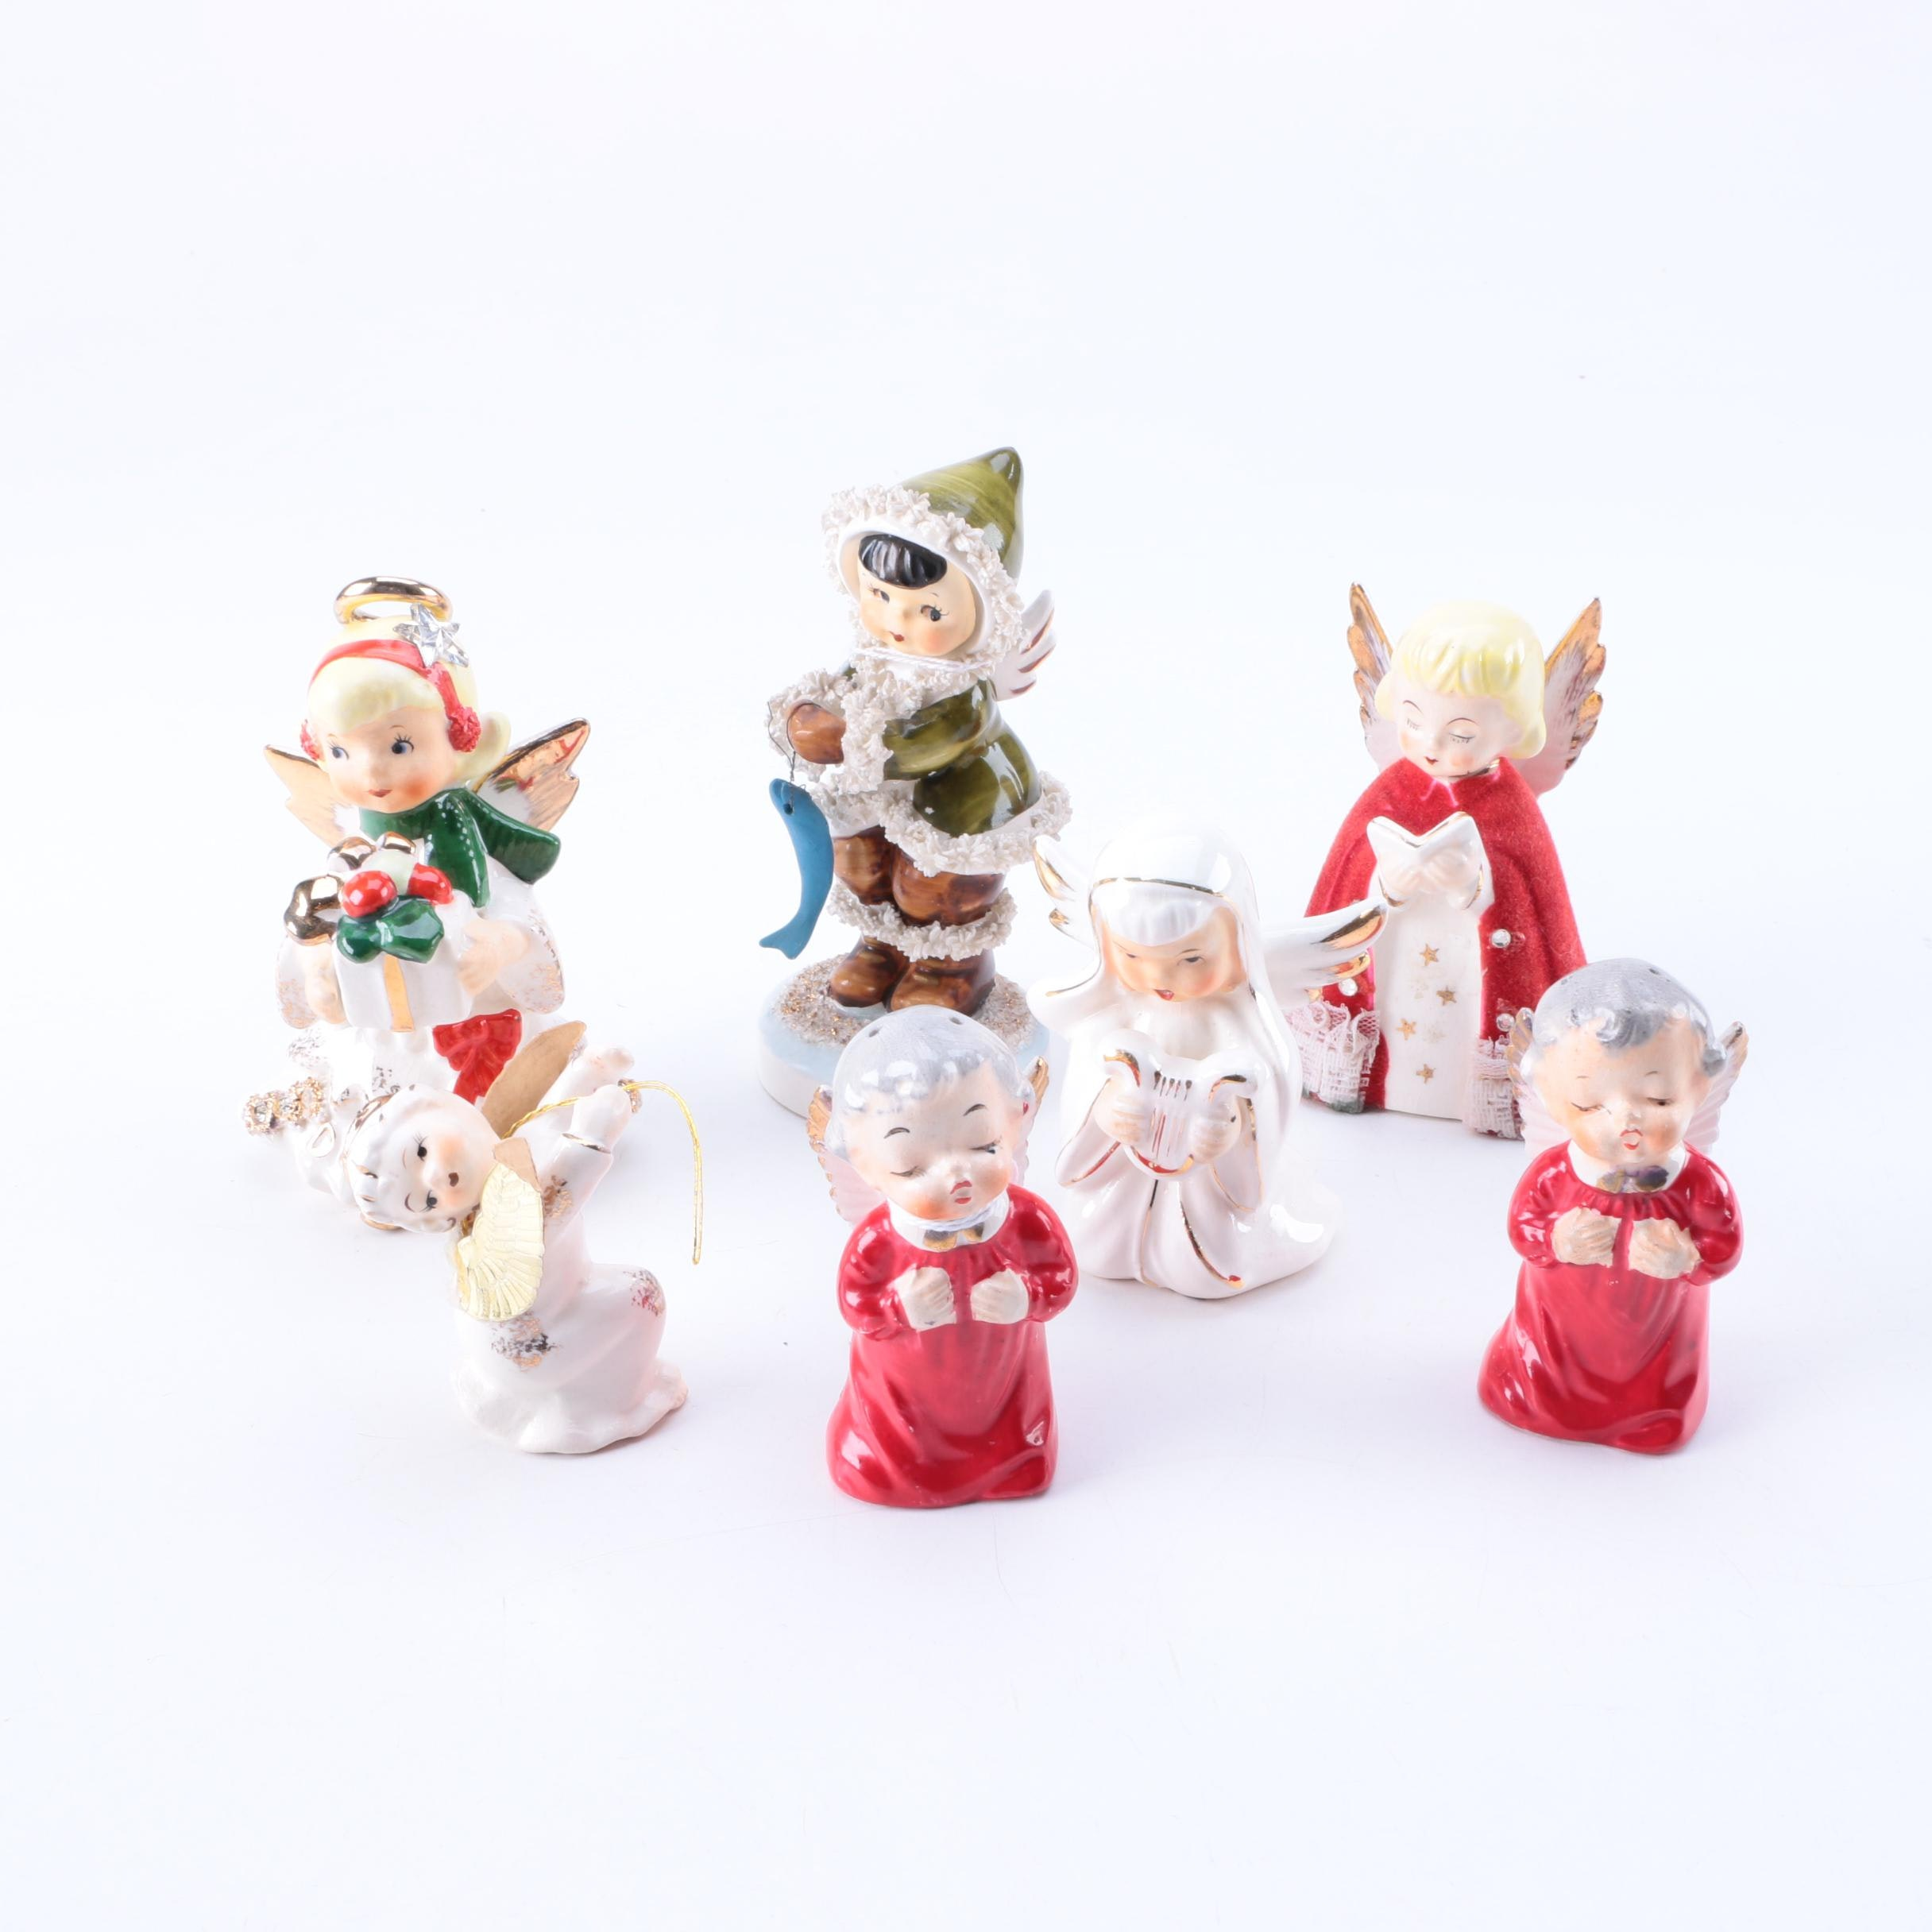 Assortment of Vintage Christmas Angel Porcelain Figurines